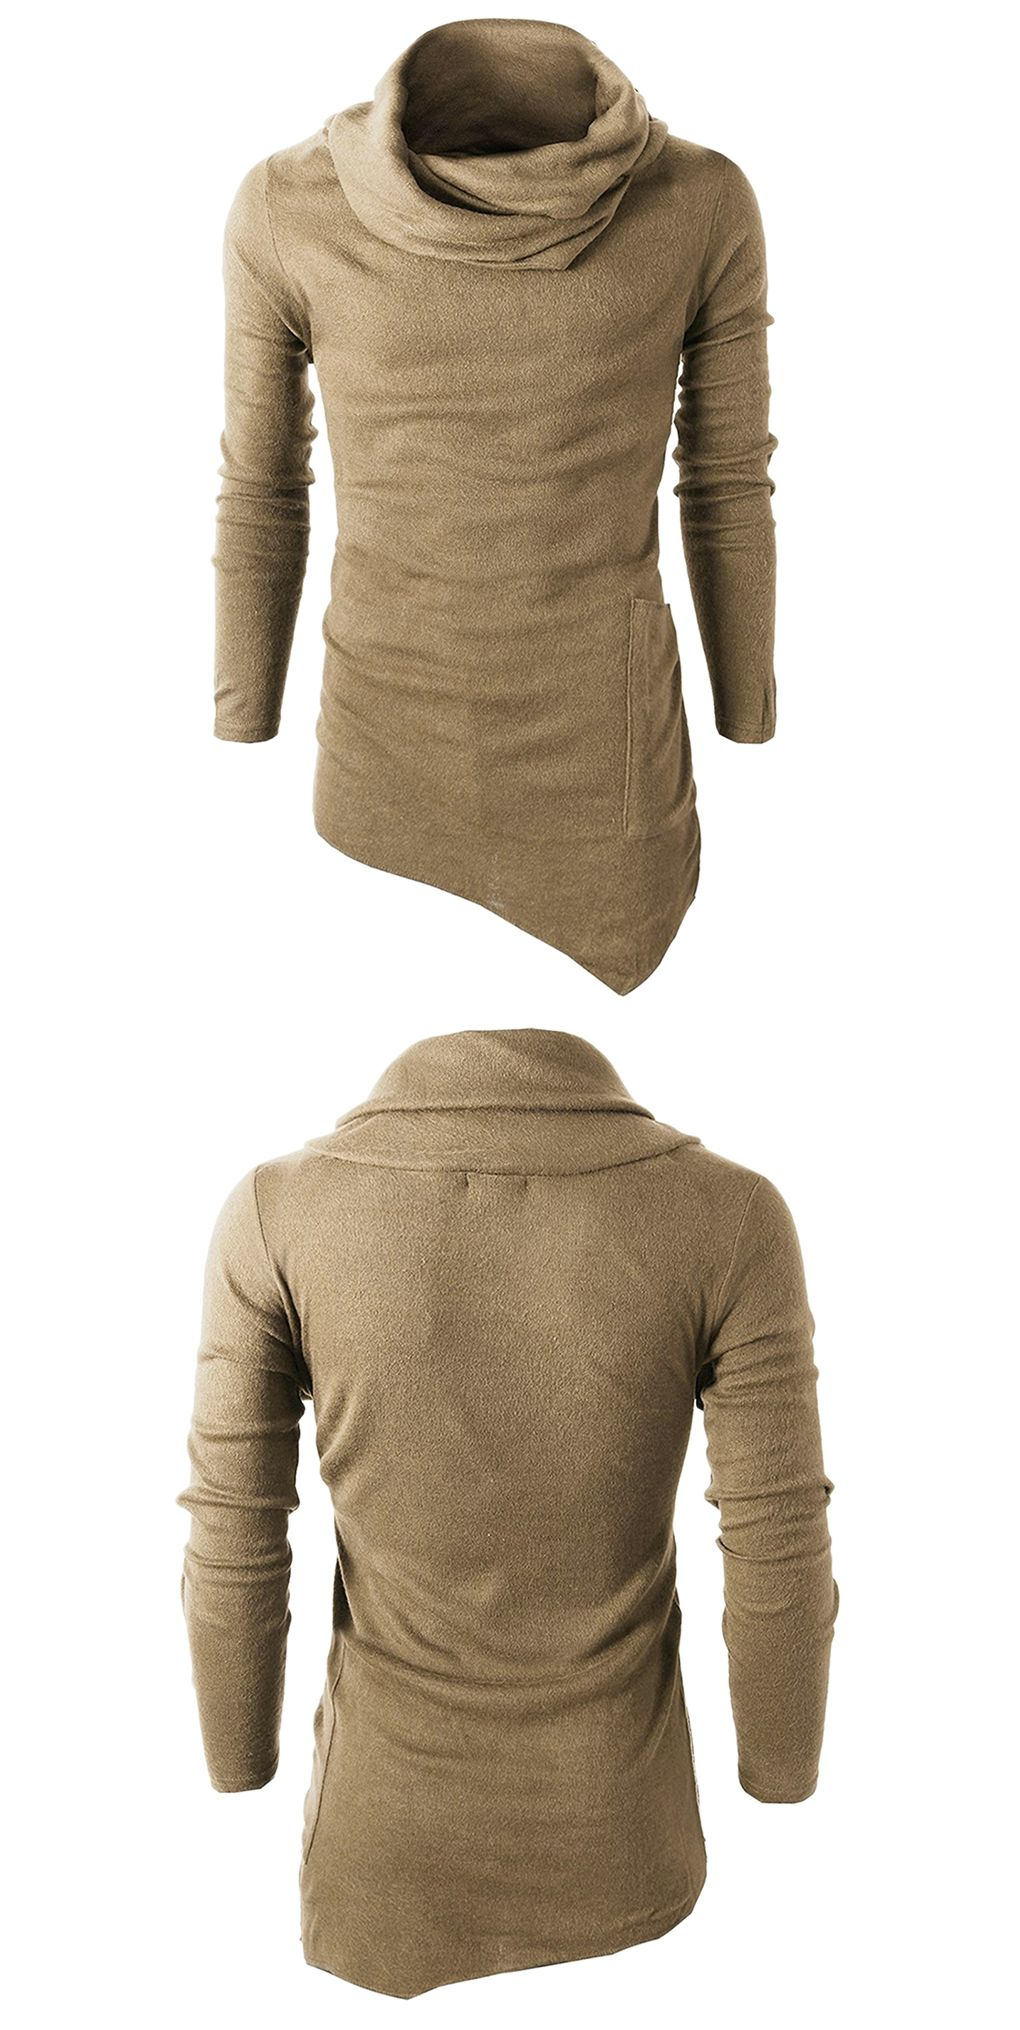 3da10323b7f1 Cowl Neck Pocket Asymmetrical Sweater - Khaki 2xl   combinaciones ...